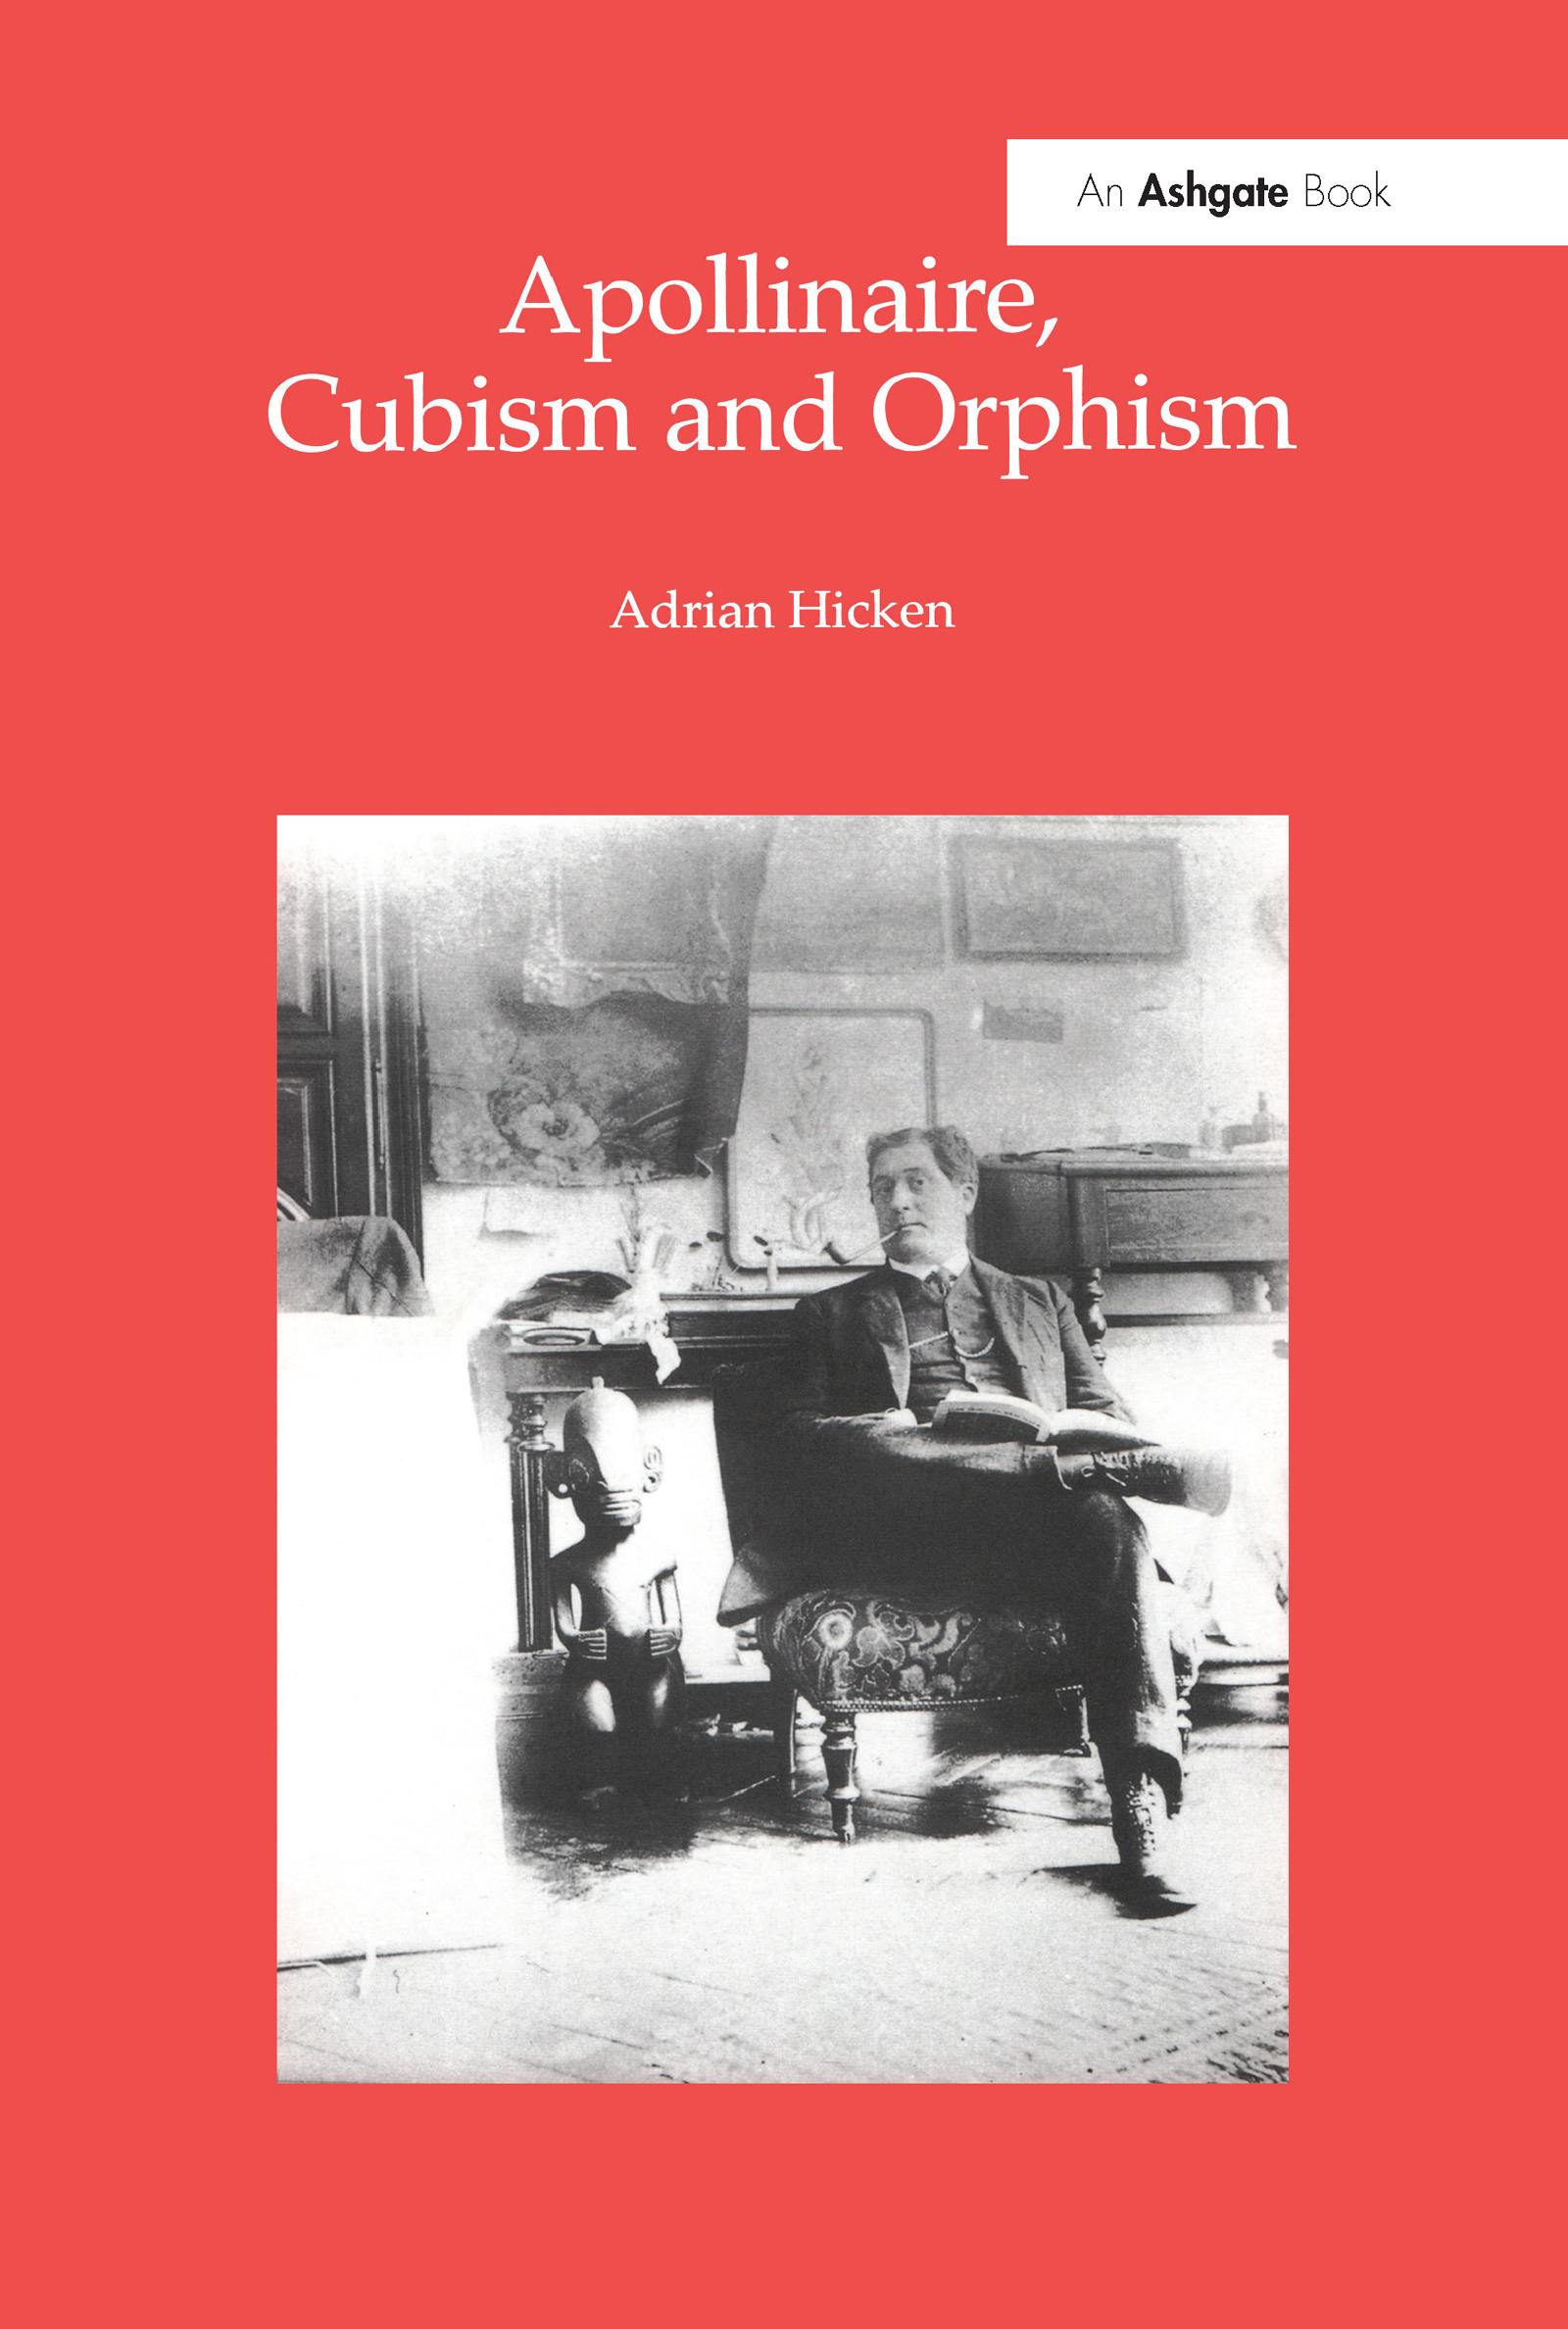 Apollinaire, Cubism and Orphism